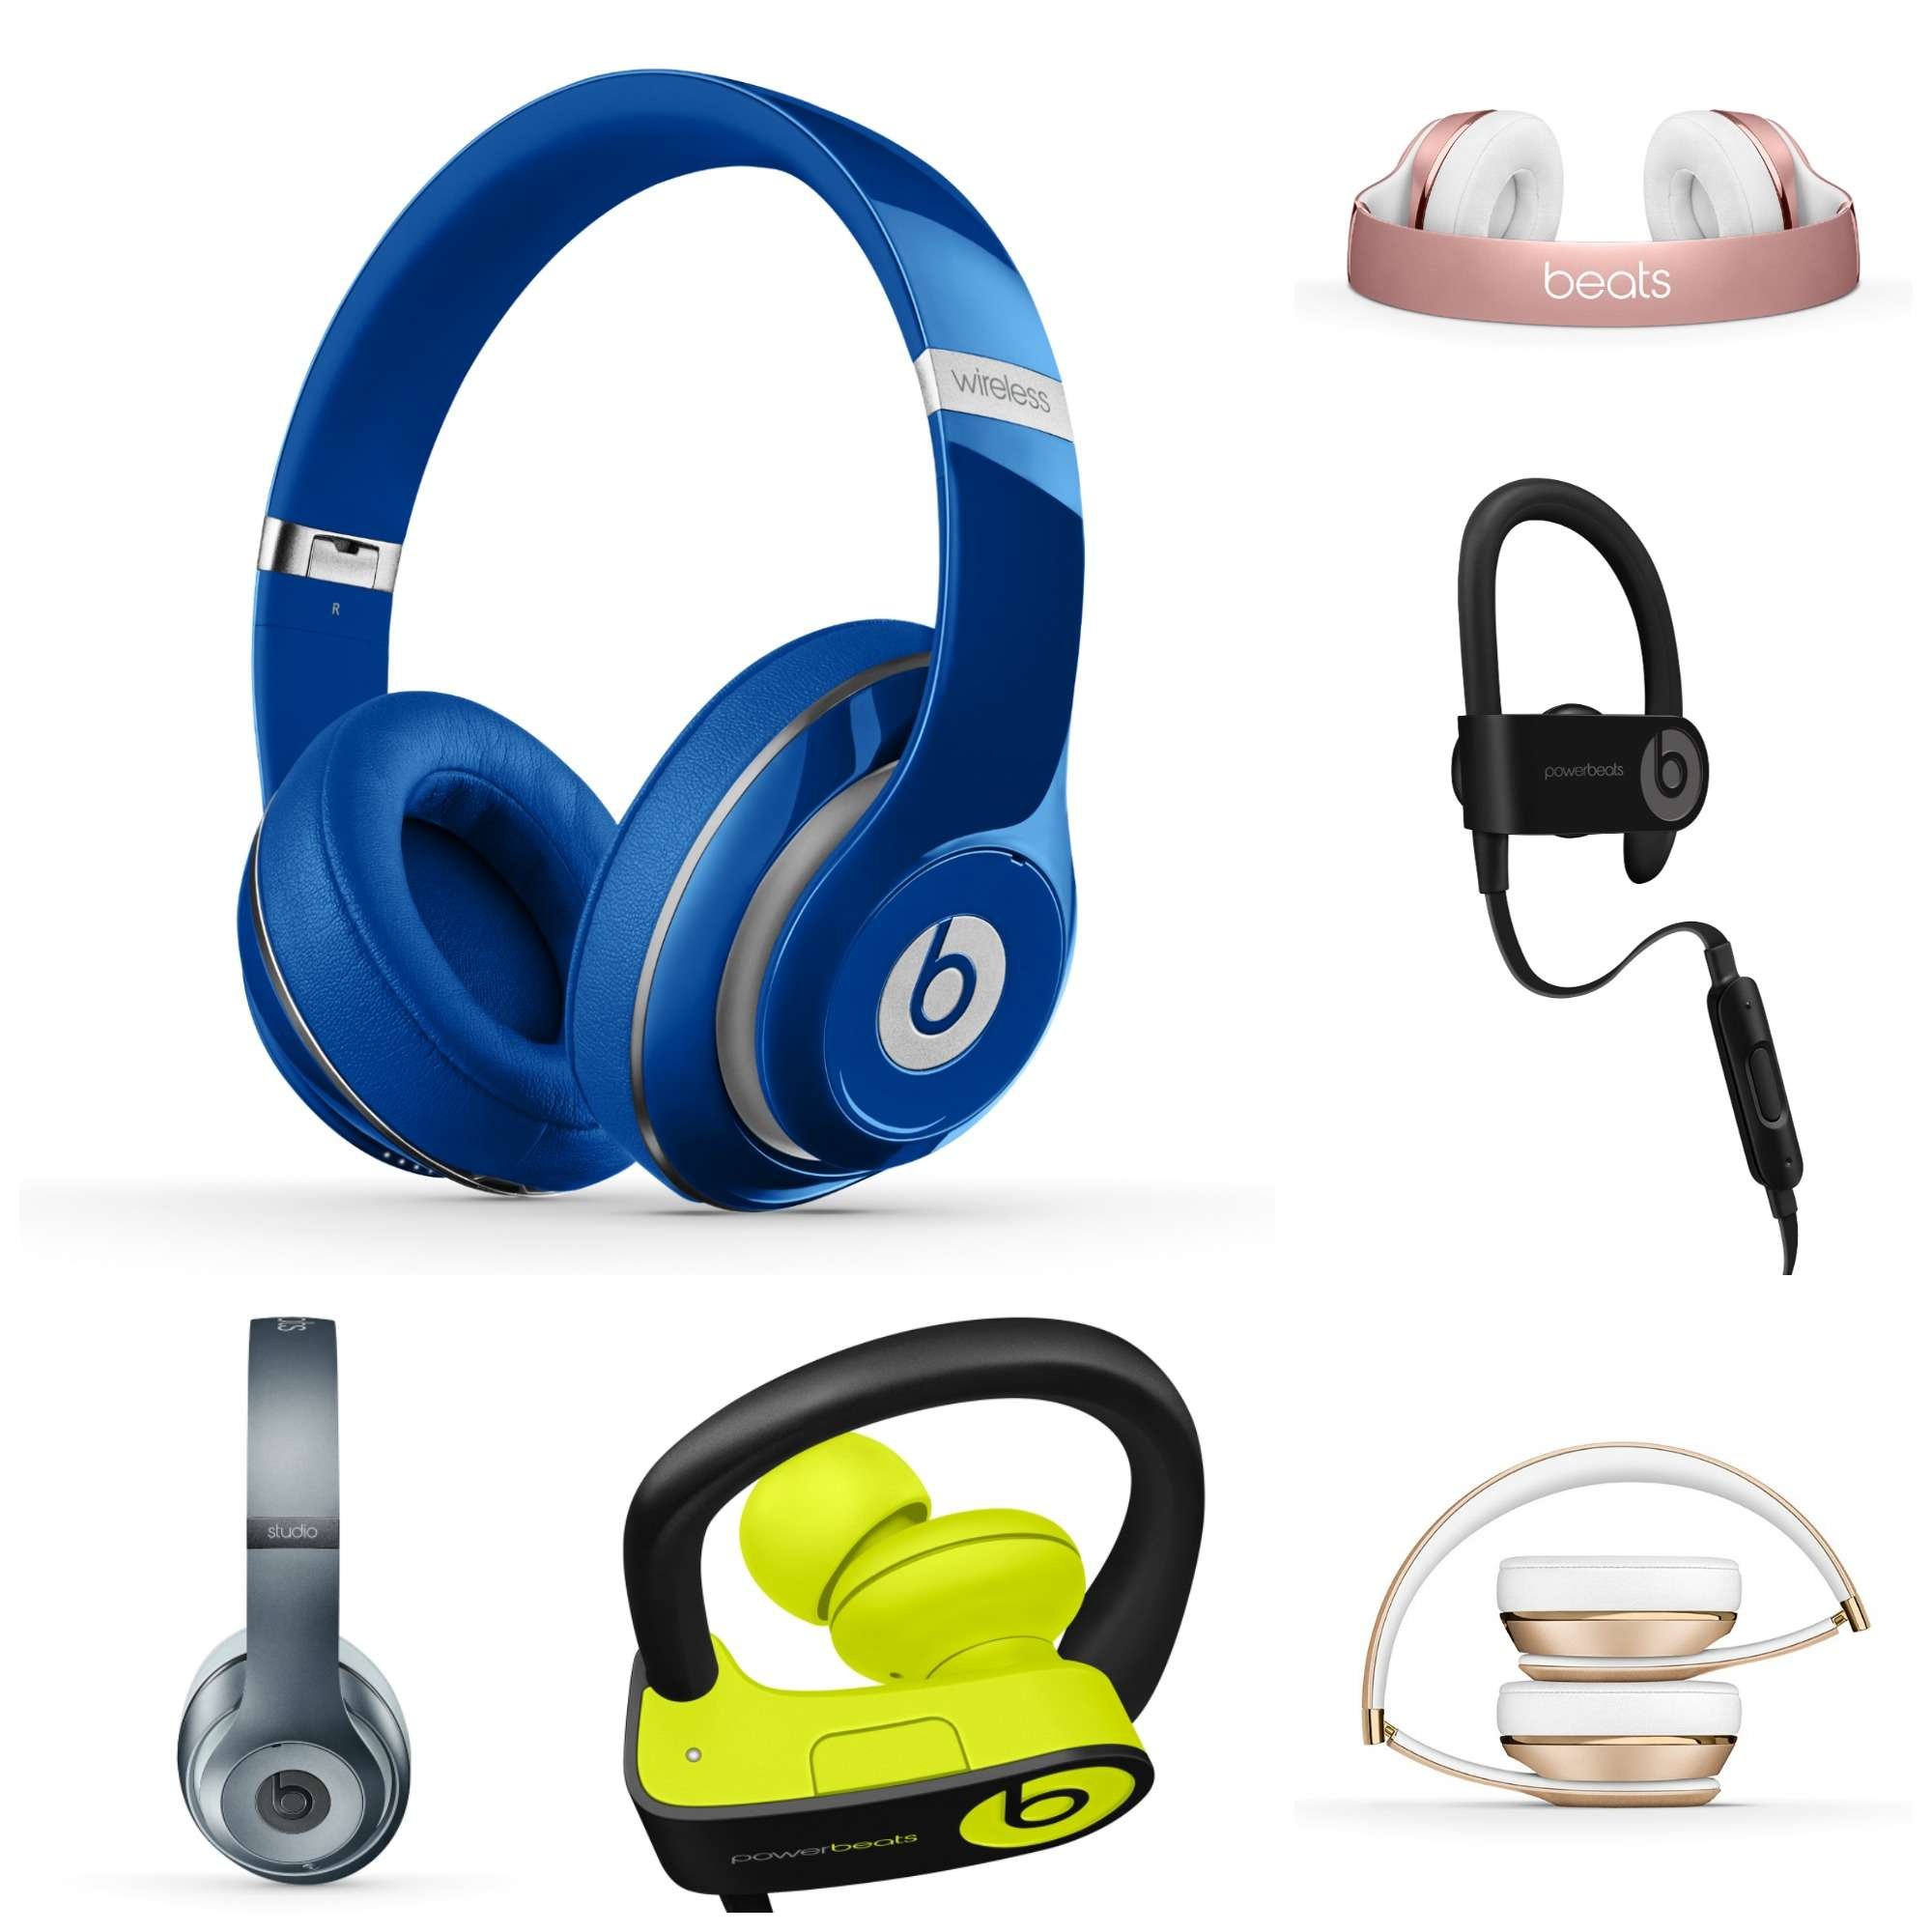 Turn It Up Your Buying Guide To Beats Wireless Headphones Cult Of Mac Headphone Jack Wiring Diagram